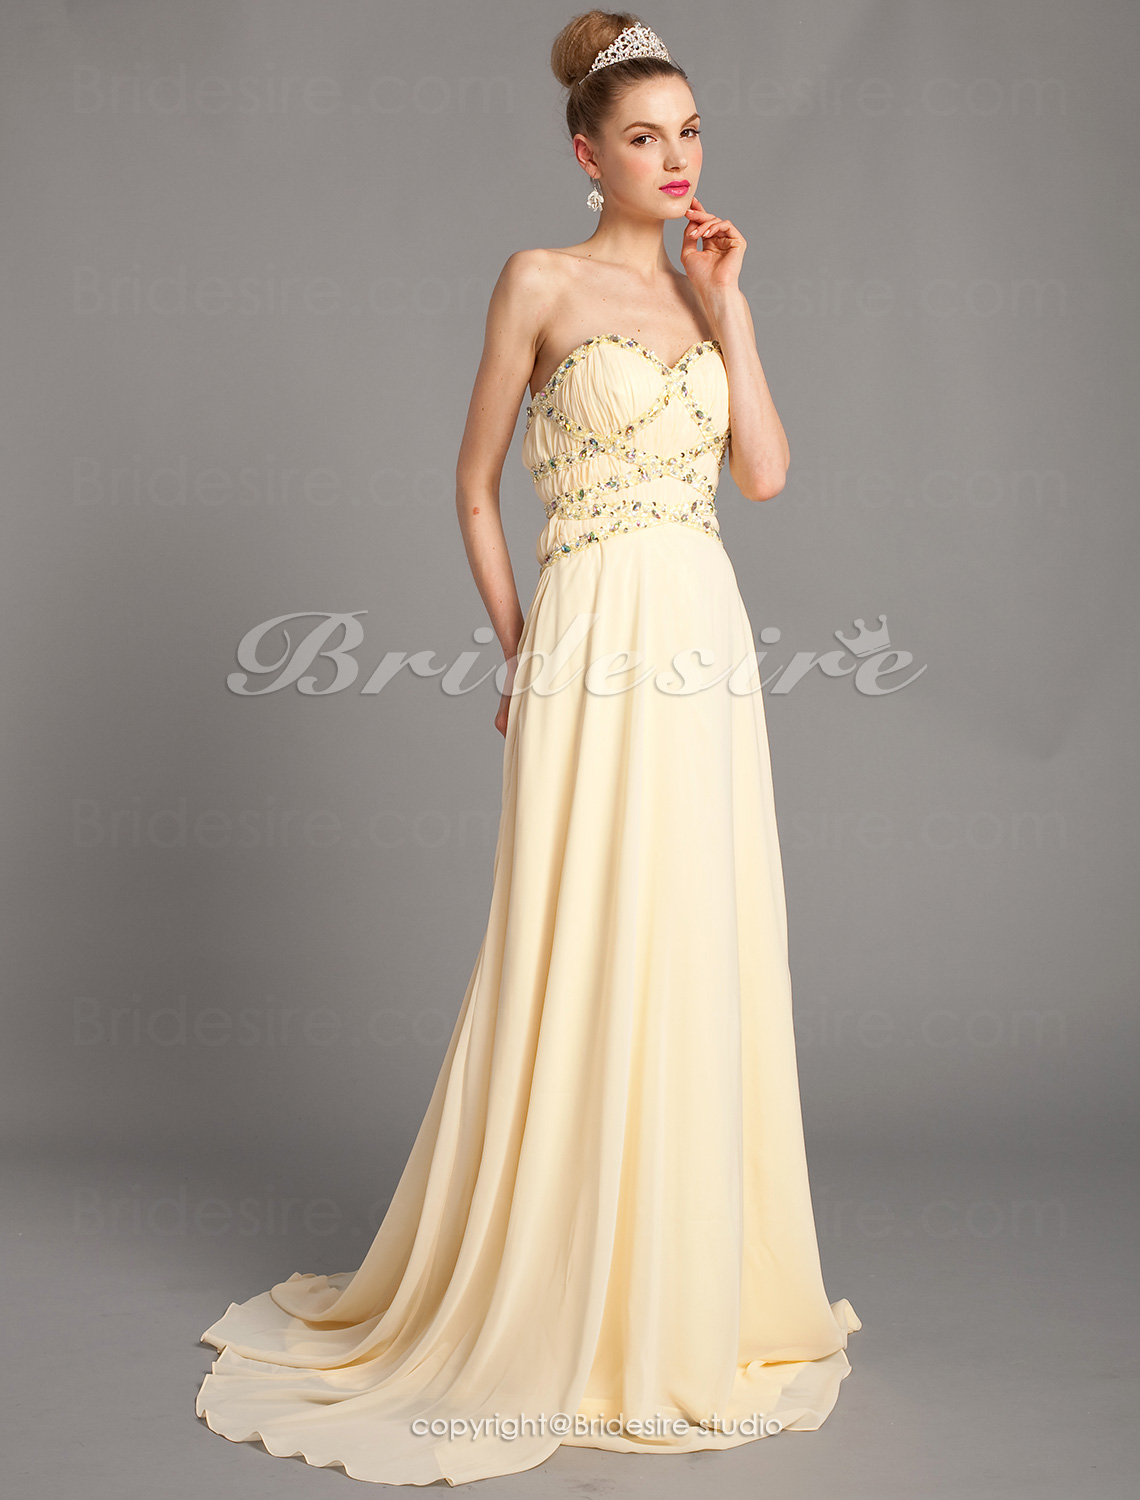 Mermaid / Trumpet Strapless Sleeveless Court Train Satin Wedding